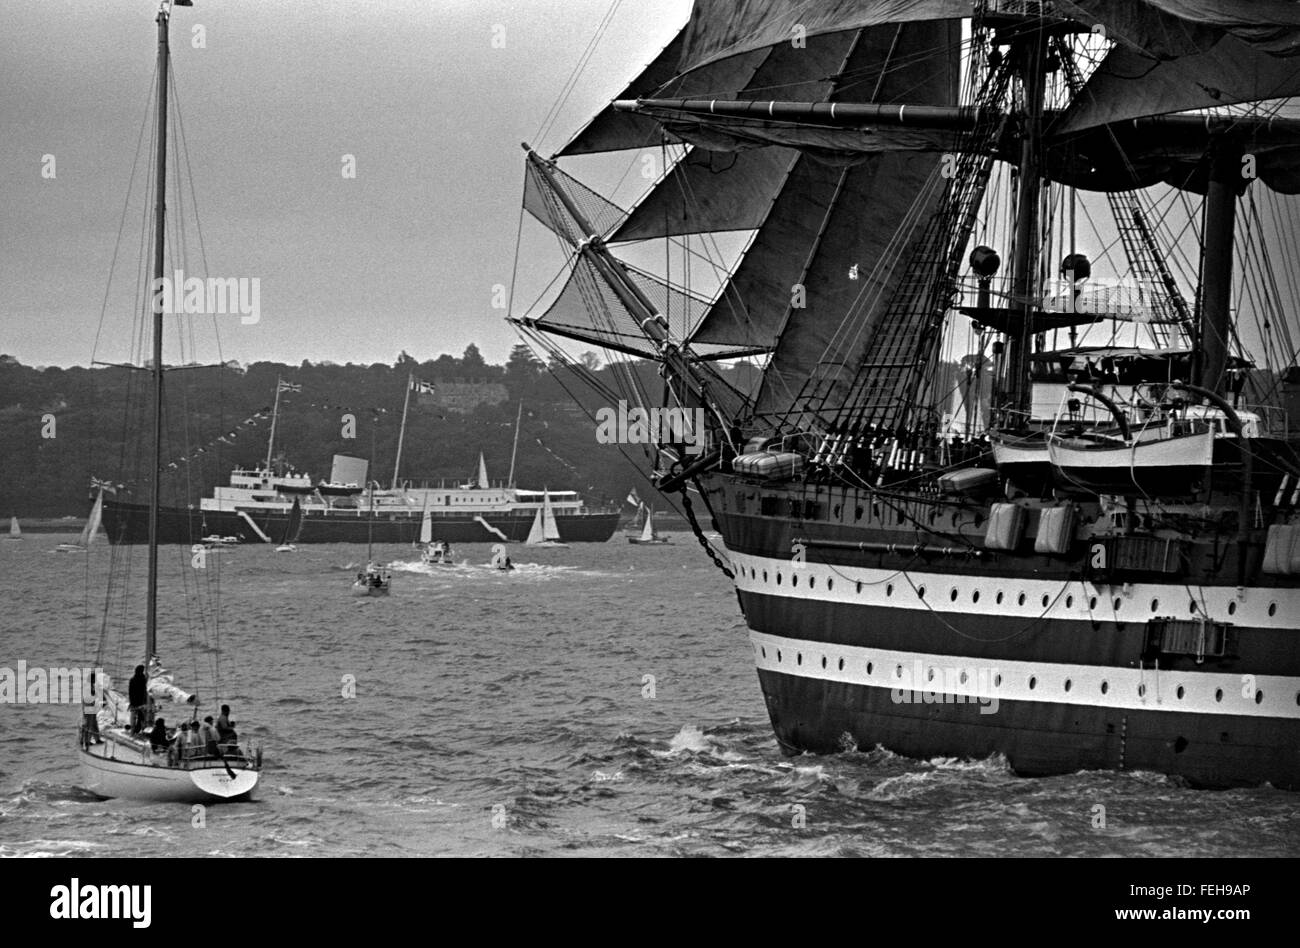 AJAX NEWS PHOTOS. 4TH AUGUST, 1974. COWES, ENGLAND. - ROYAL YACHT REVIEWS TALL SHIPS - THE ITALIAN SQUARE RIG NAVAL - Stock Image